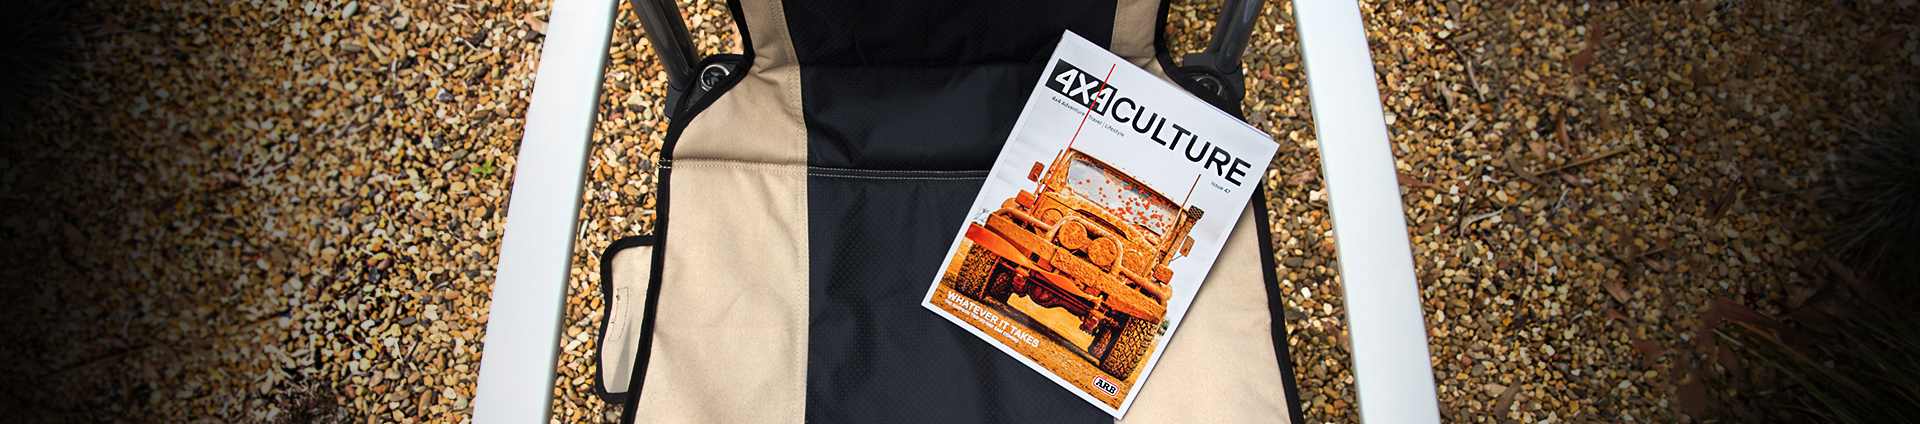 4x4 Culture Magazine 4x4 Accessories Subscribe